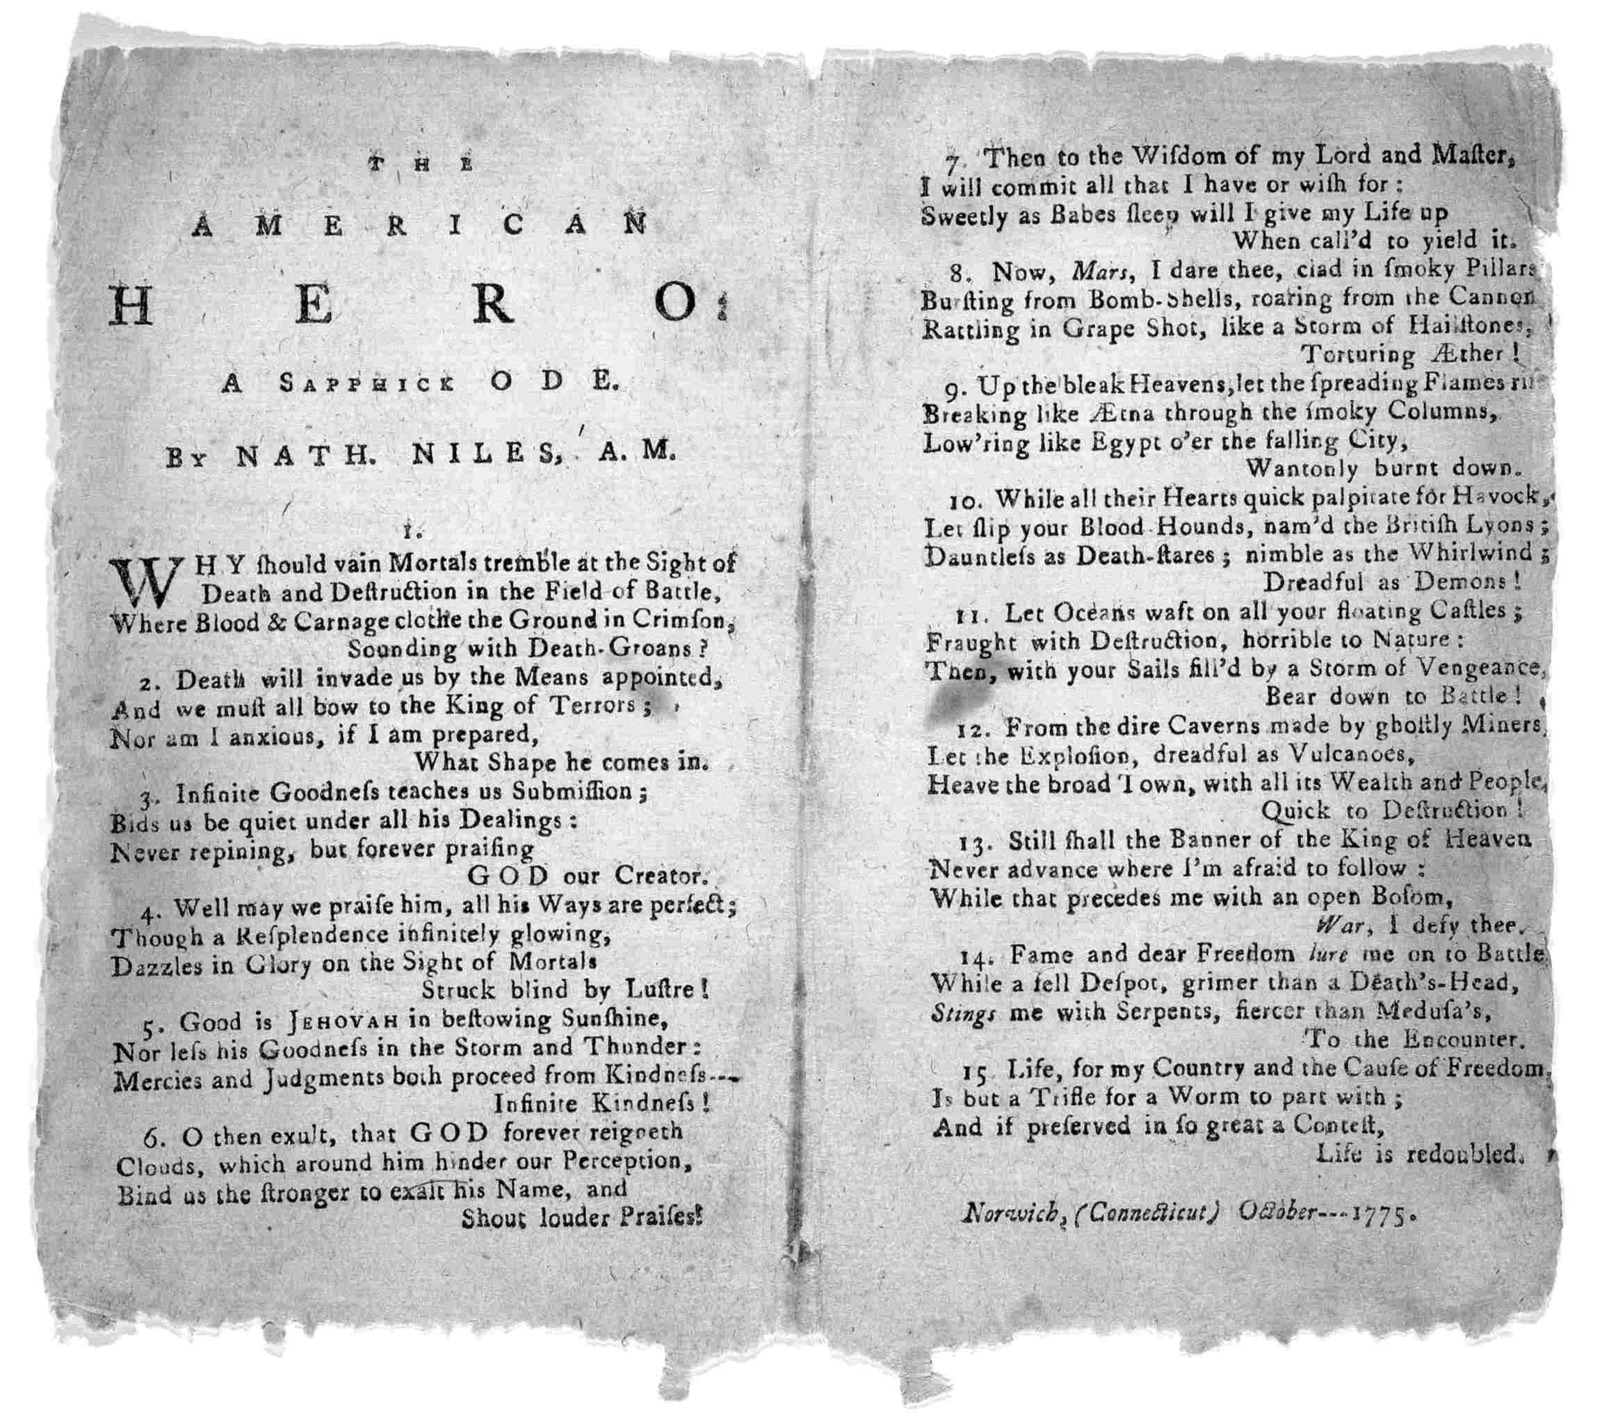 The American hero: a sapphick ode by Nath. Niles. A. M. Norwich, (Connecticut) October 1775.